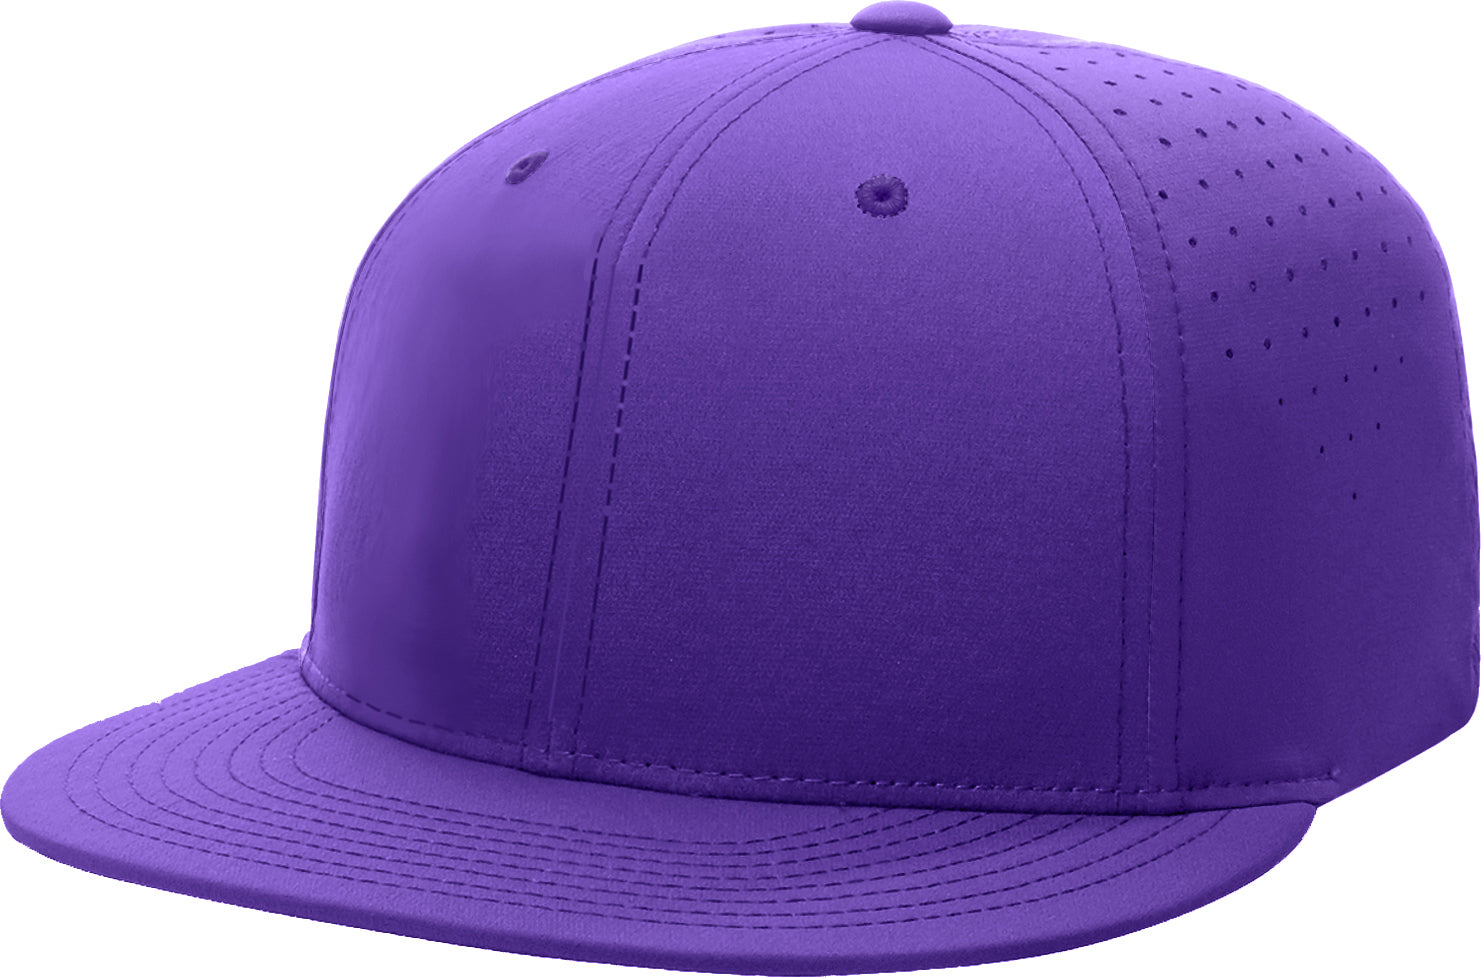 Richardson PTS30 SOLID COLORS R-Flex Cap 15 Color to Choose (EMBROIDERY AVAILABLE) - AtlanticCoastSports